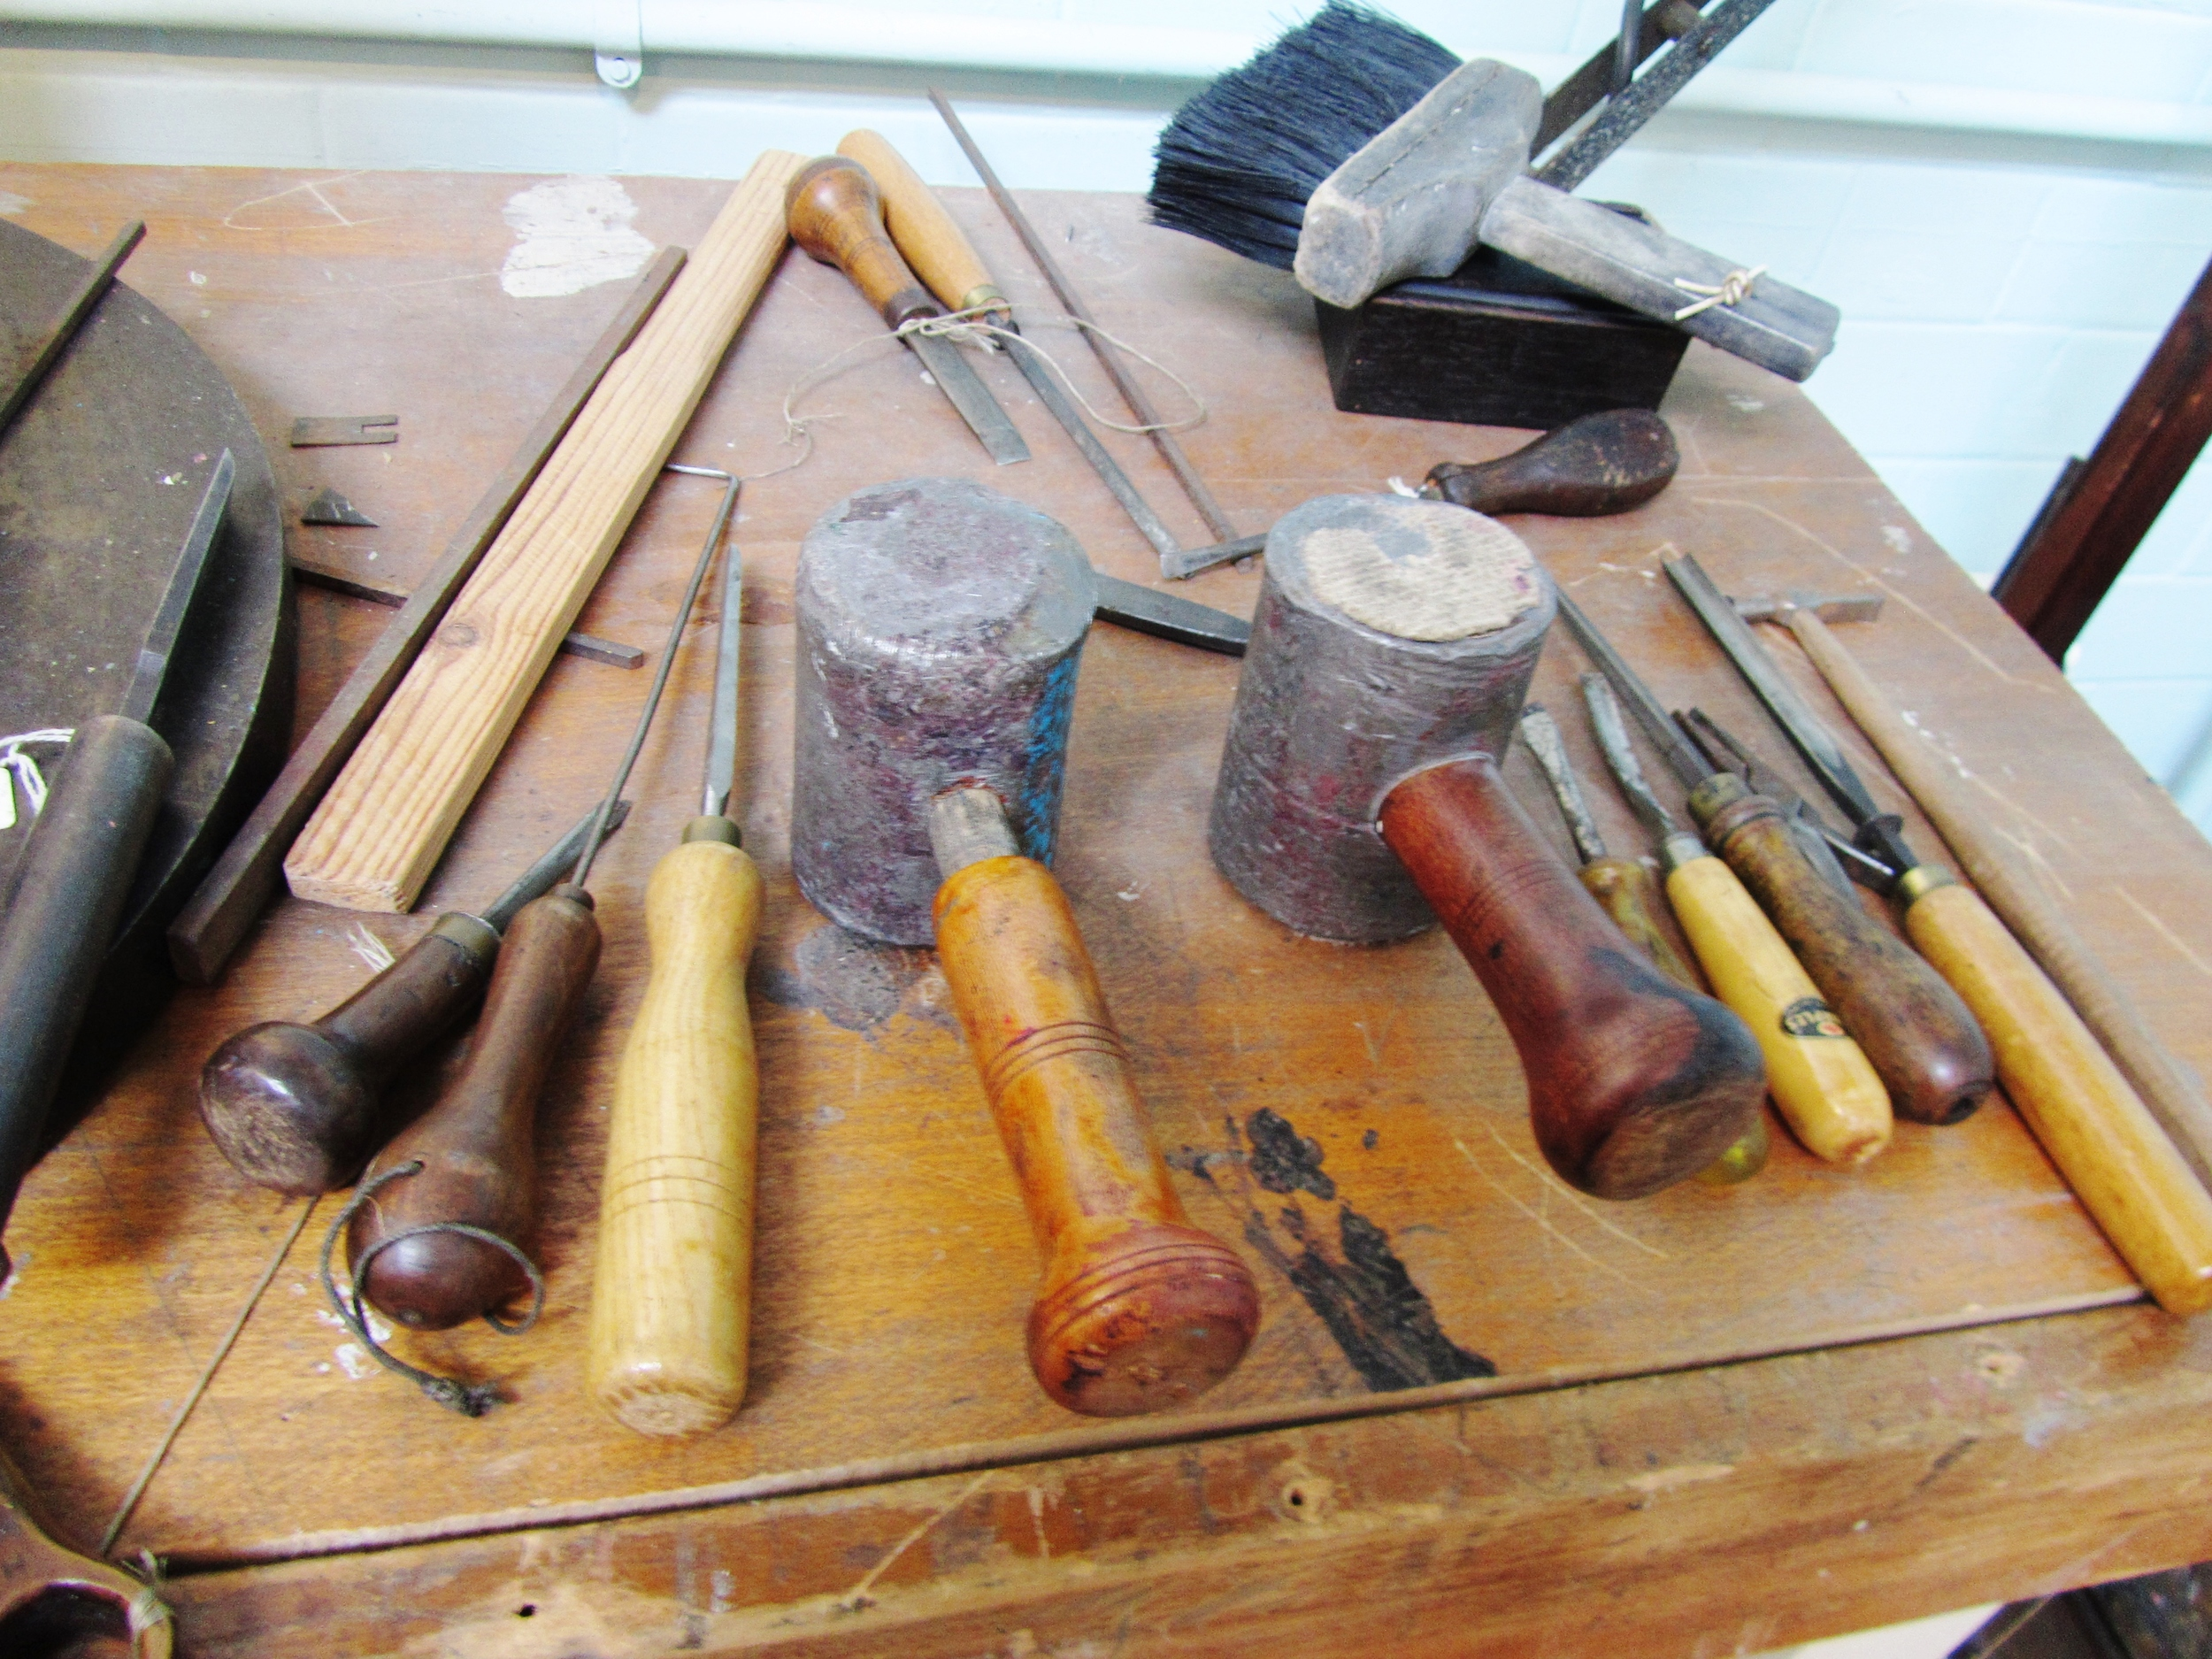 Tools from the trade, Silk Museum, Macclesfield